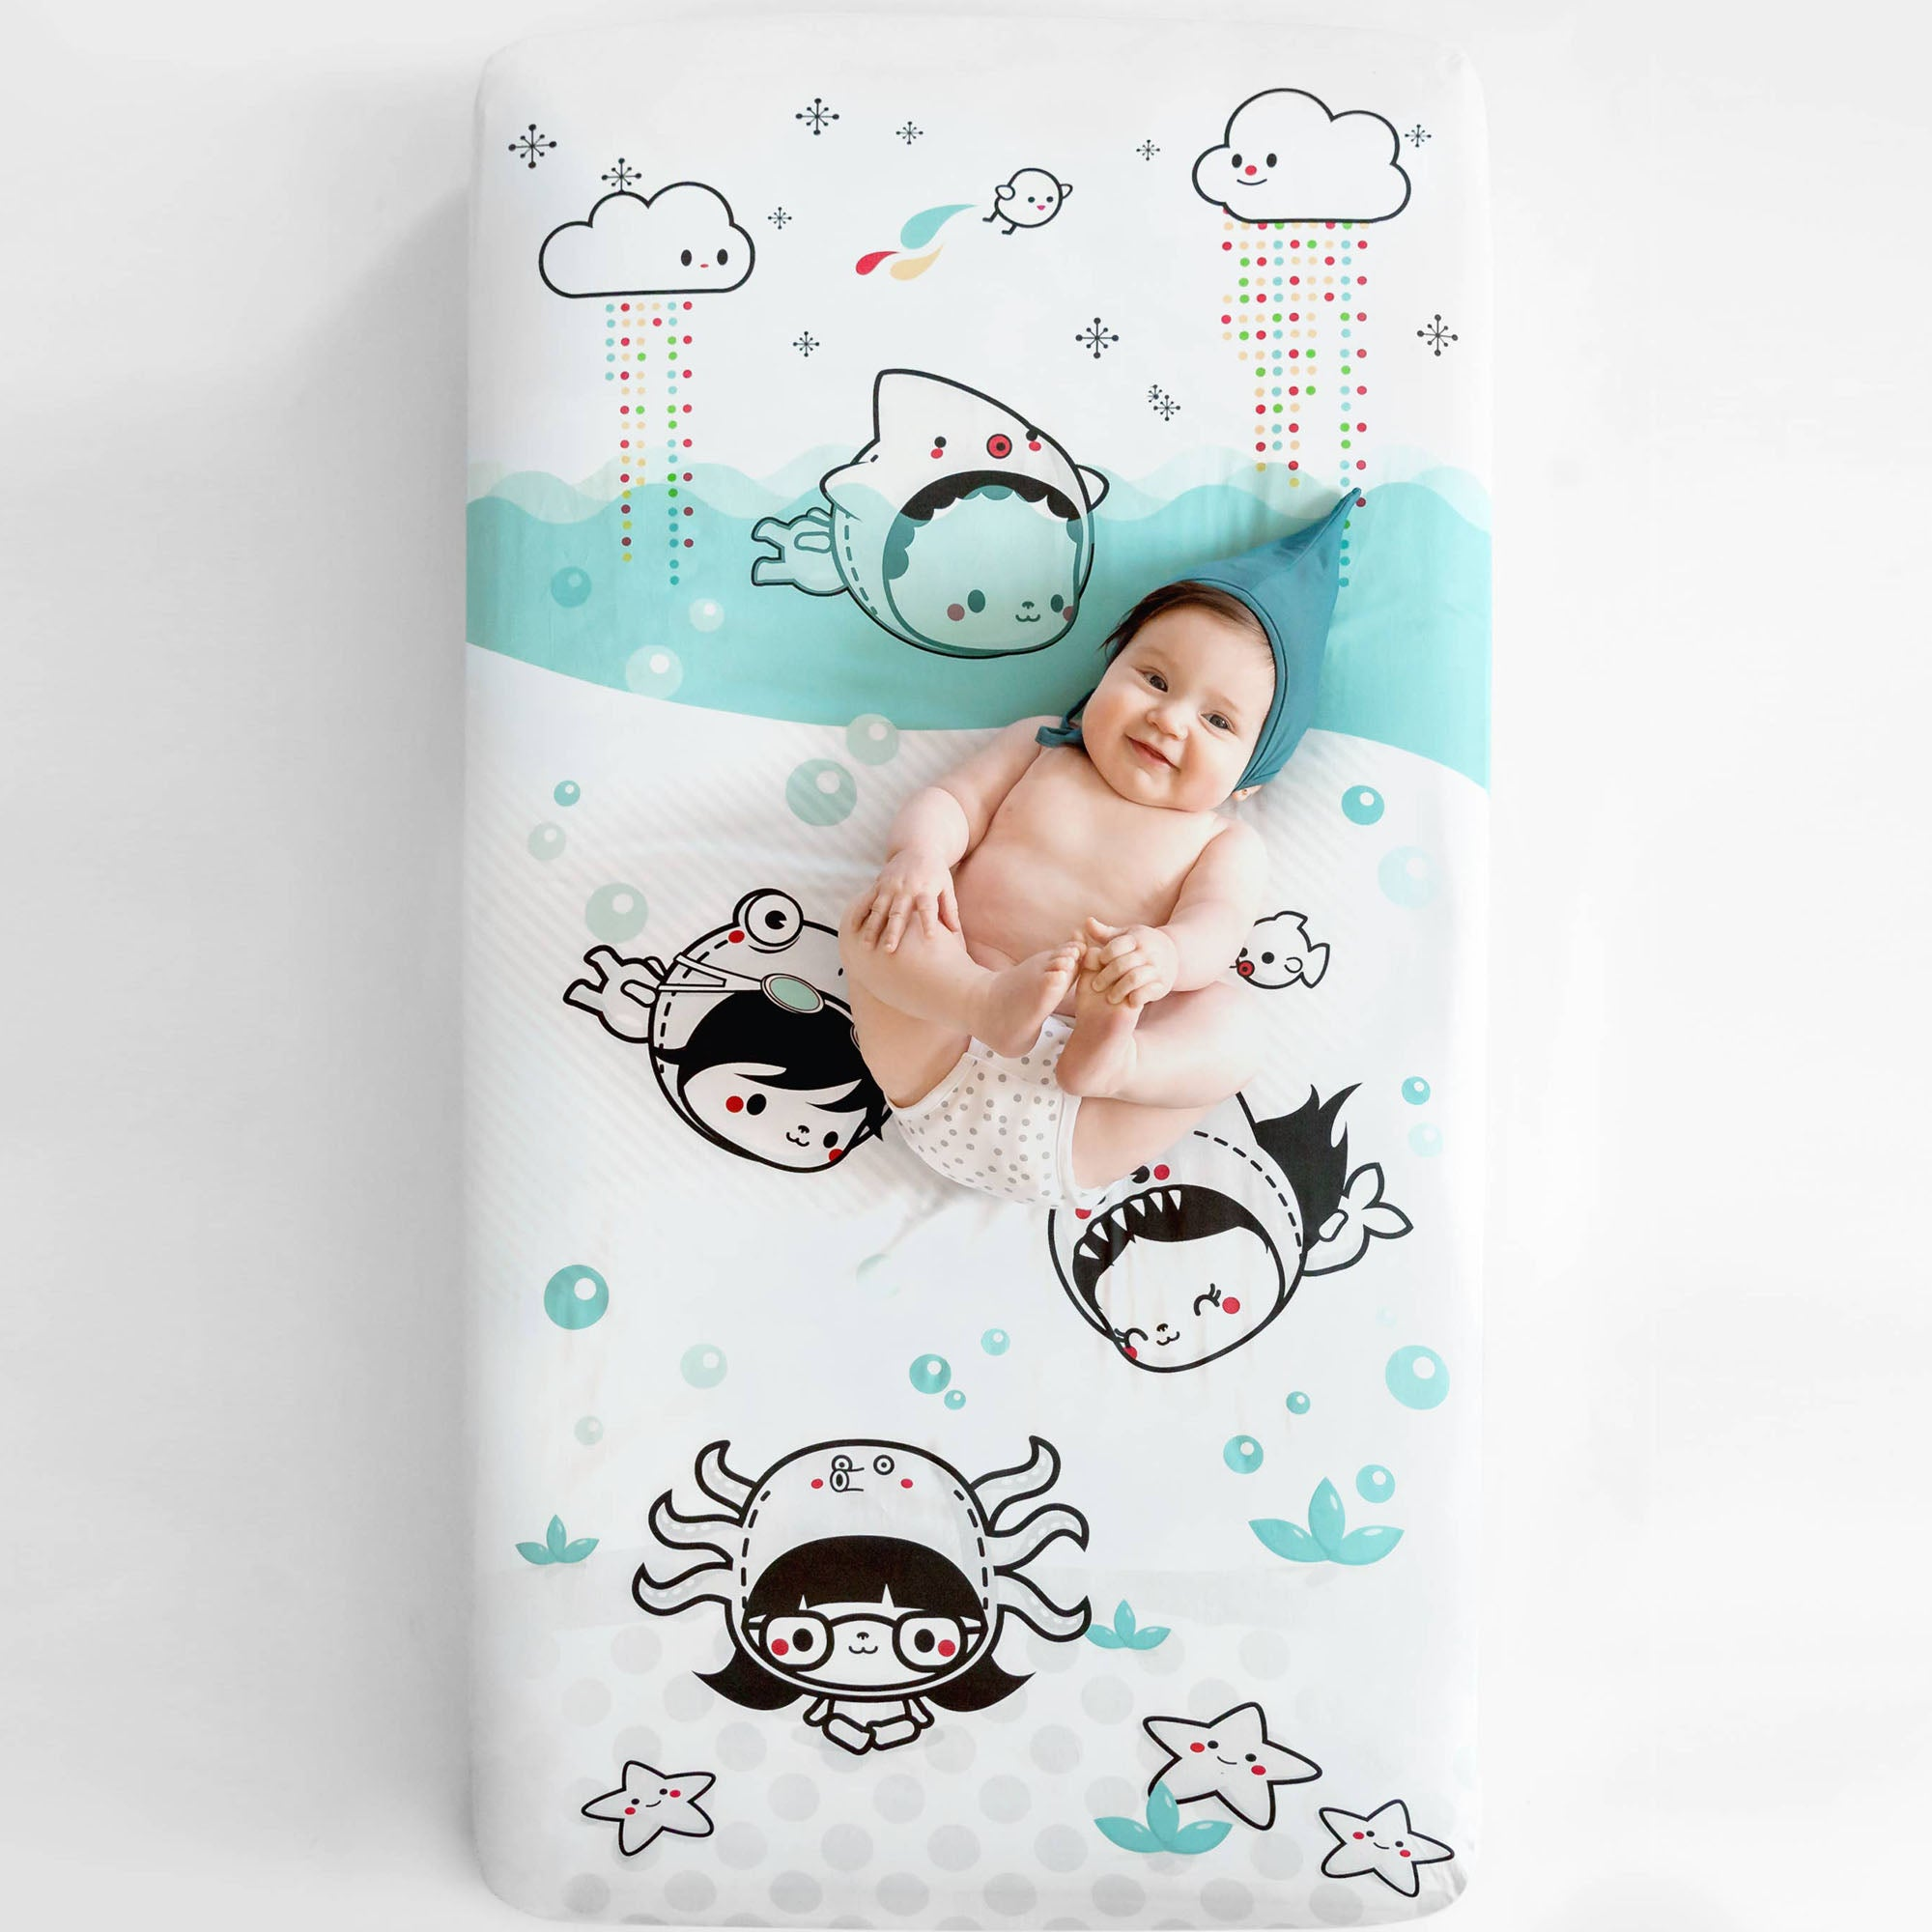 Rookie Humans Organic Cotton Crib Sheet - Dive In